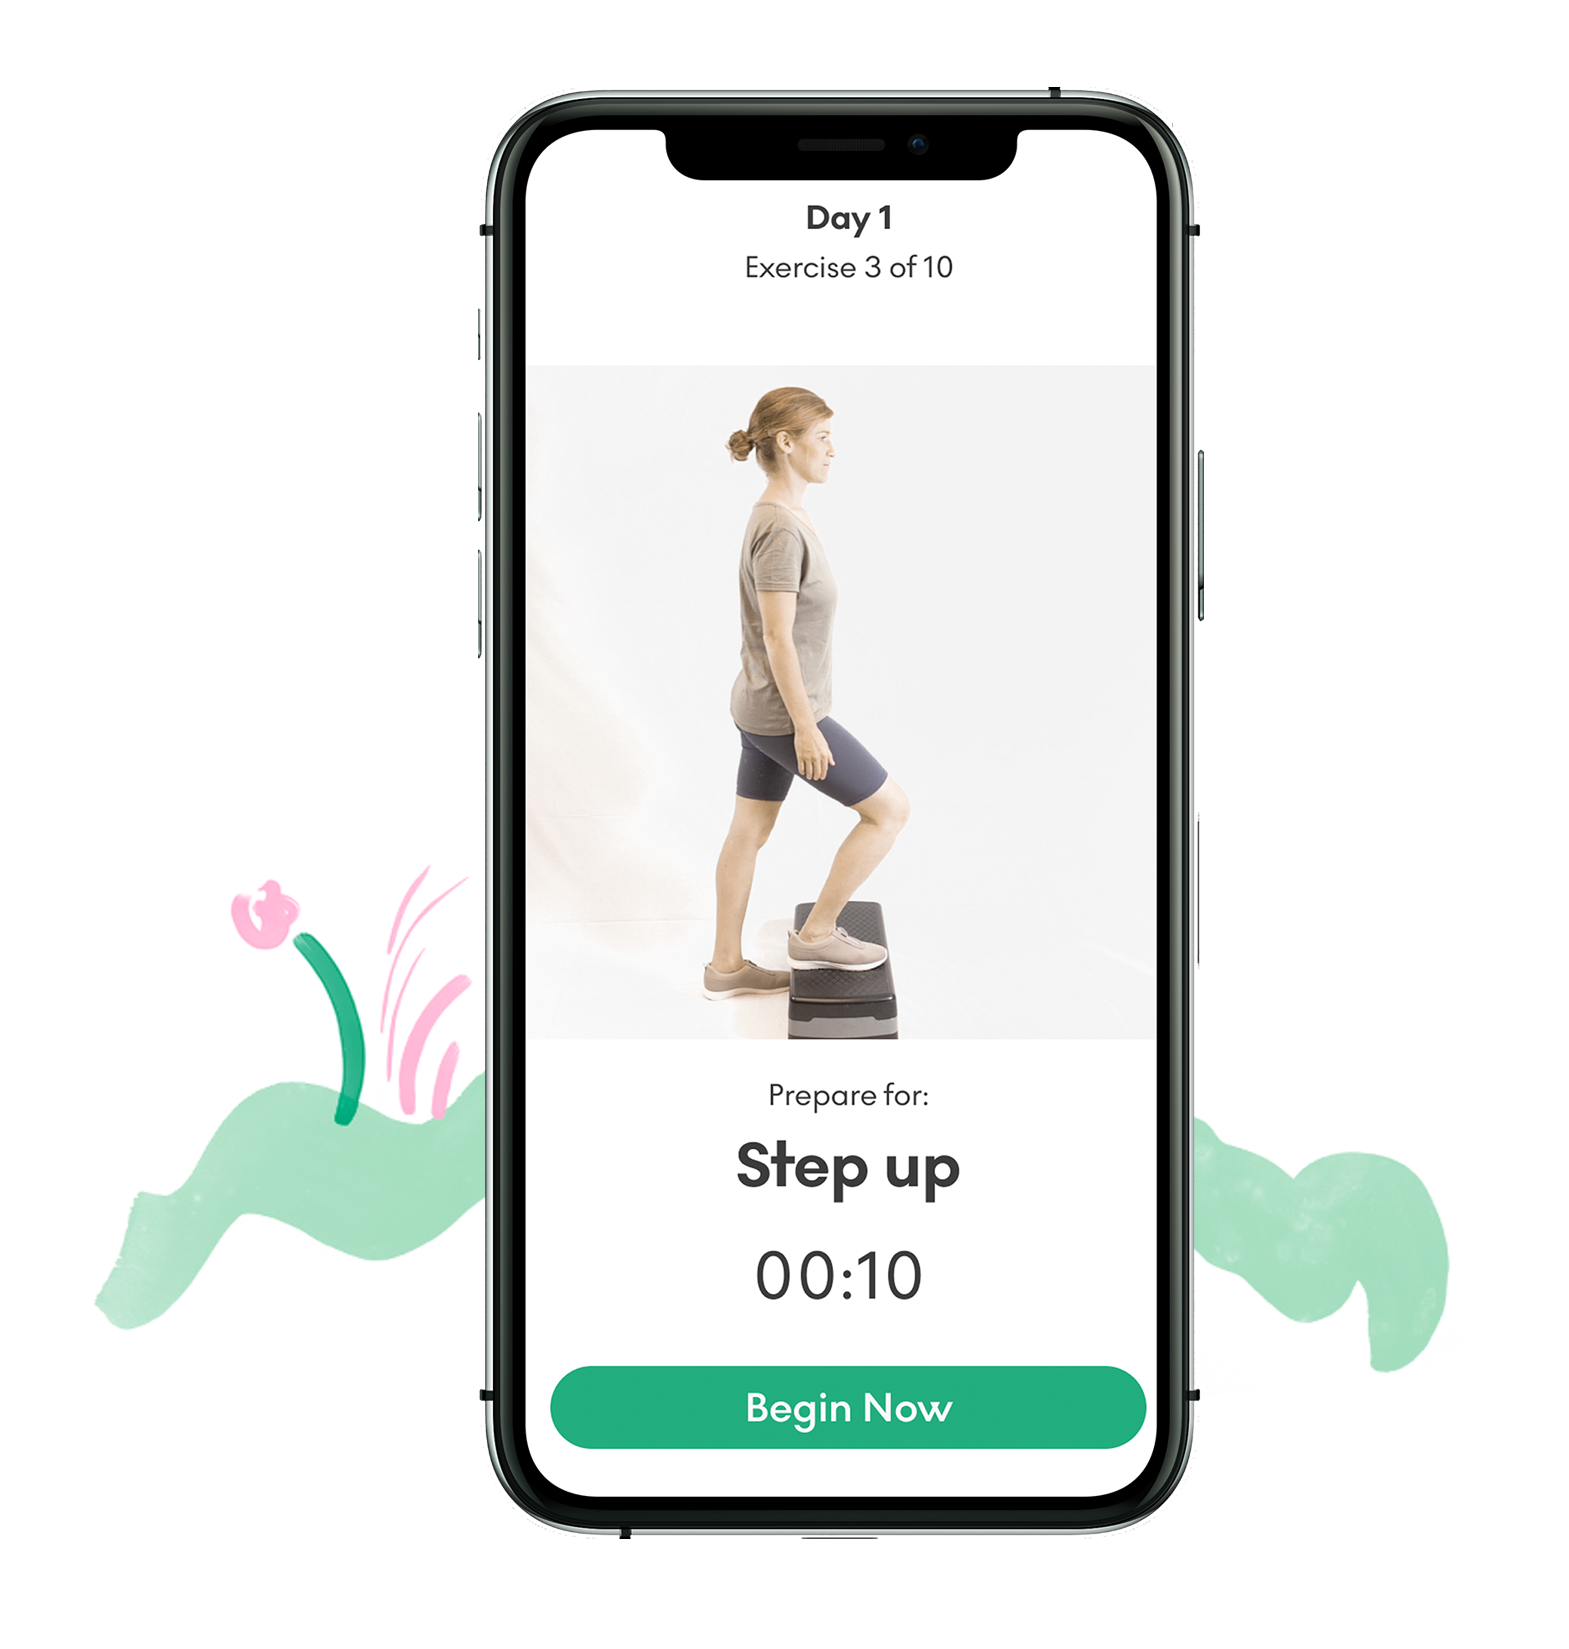 A phone screen showing how to exercise